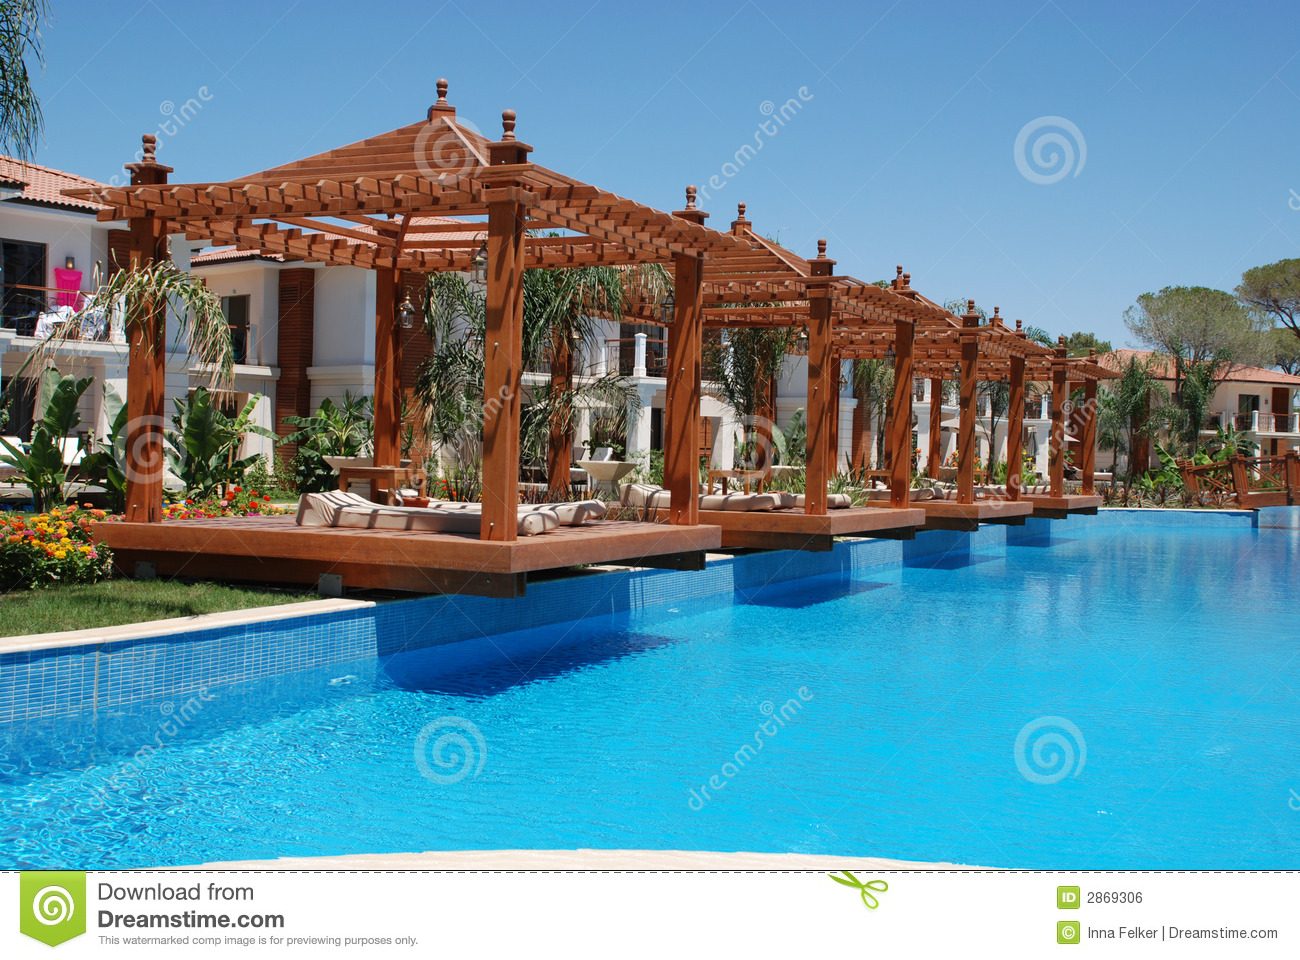 Pool And Pergola Royalty Free Stock Image - Image: 2869306